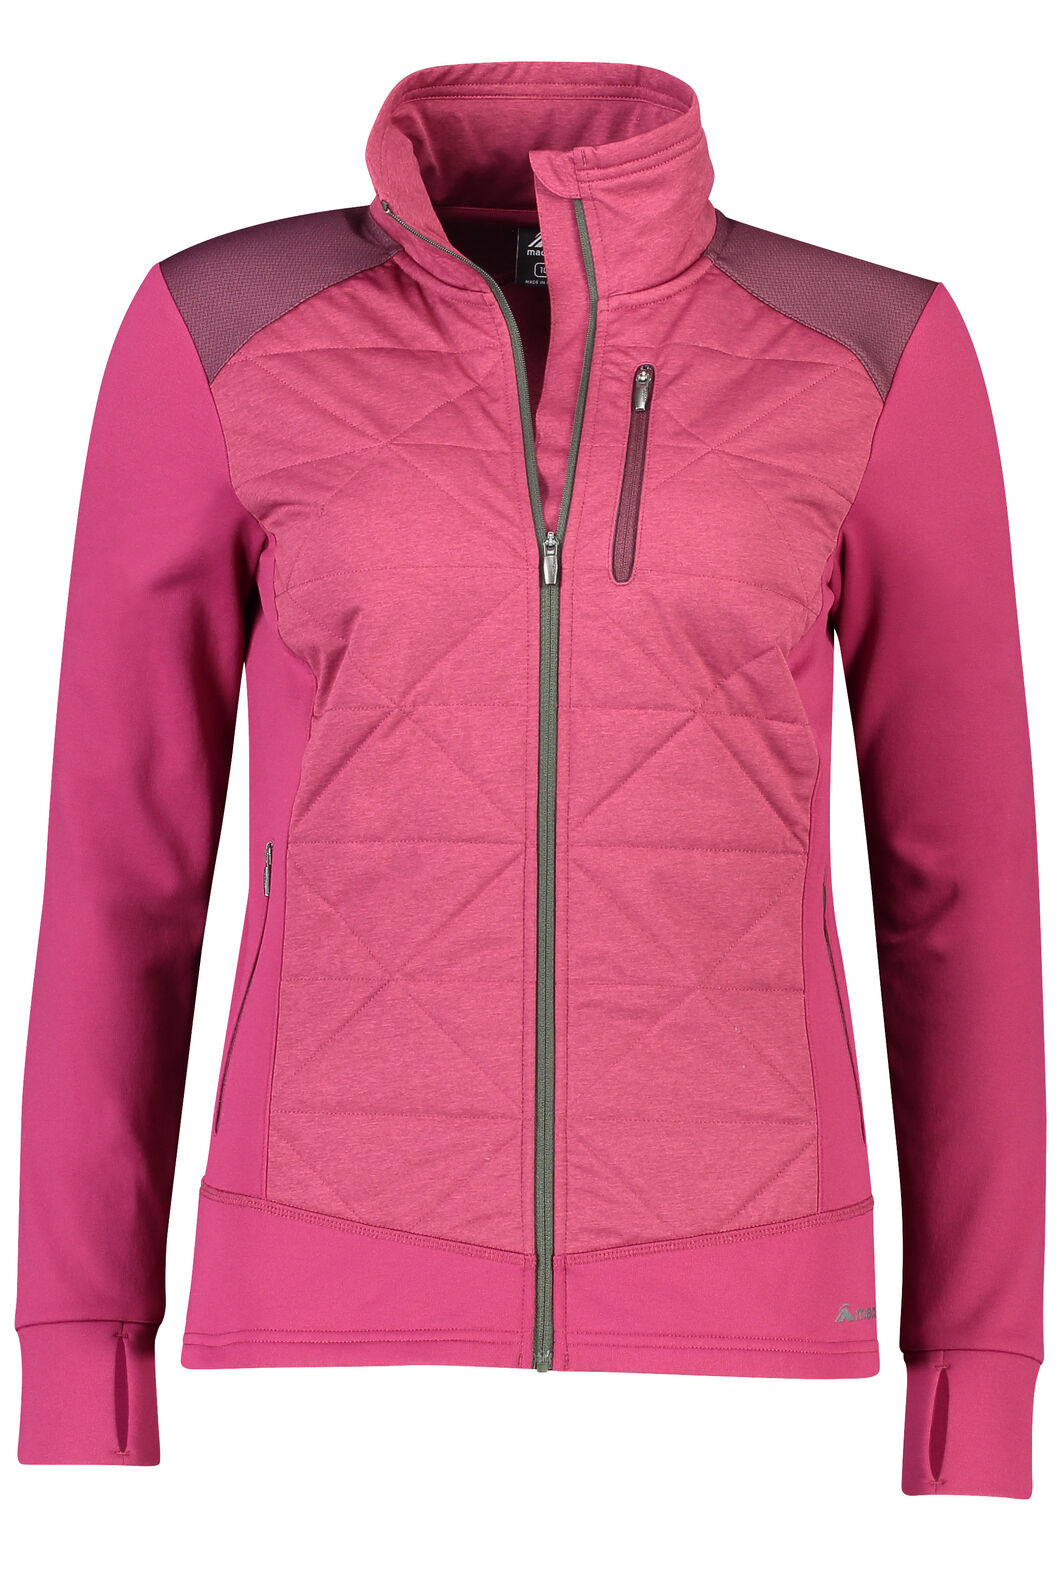 Macpac Accelerate PrimaLoft® Fleece Jacket — Women's, Beet Red, hi-res